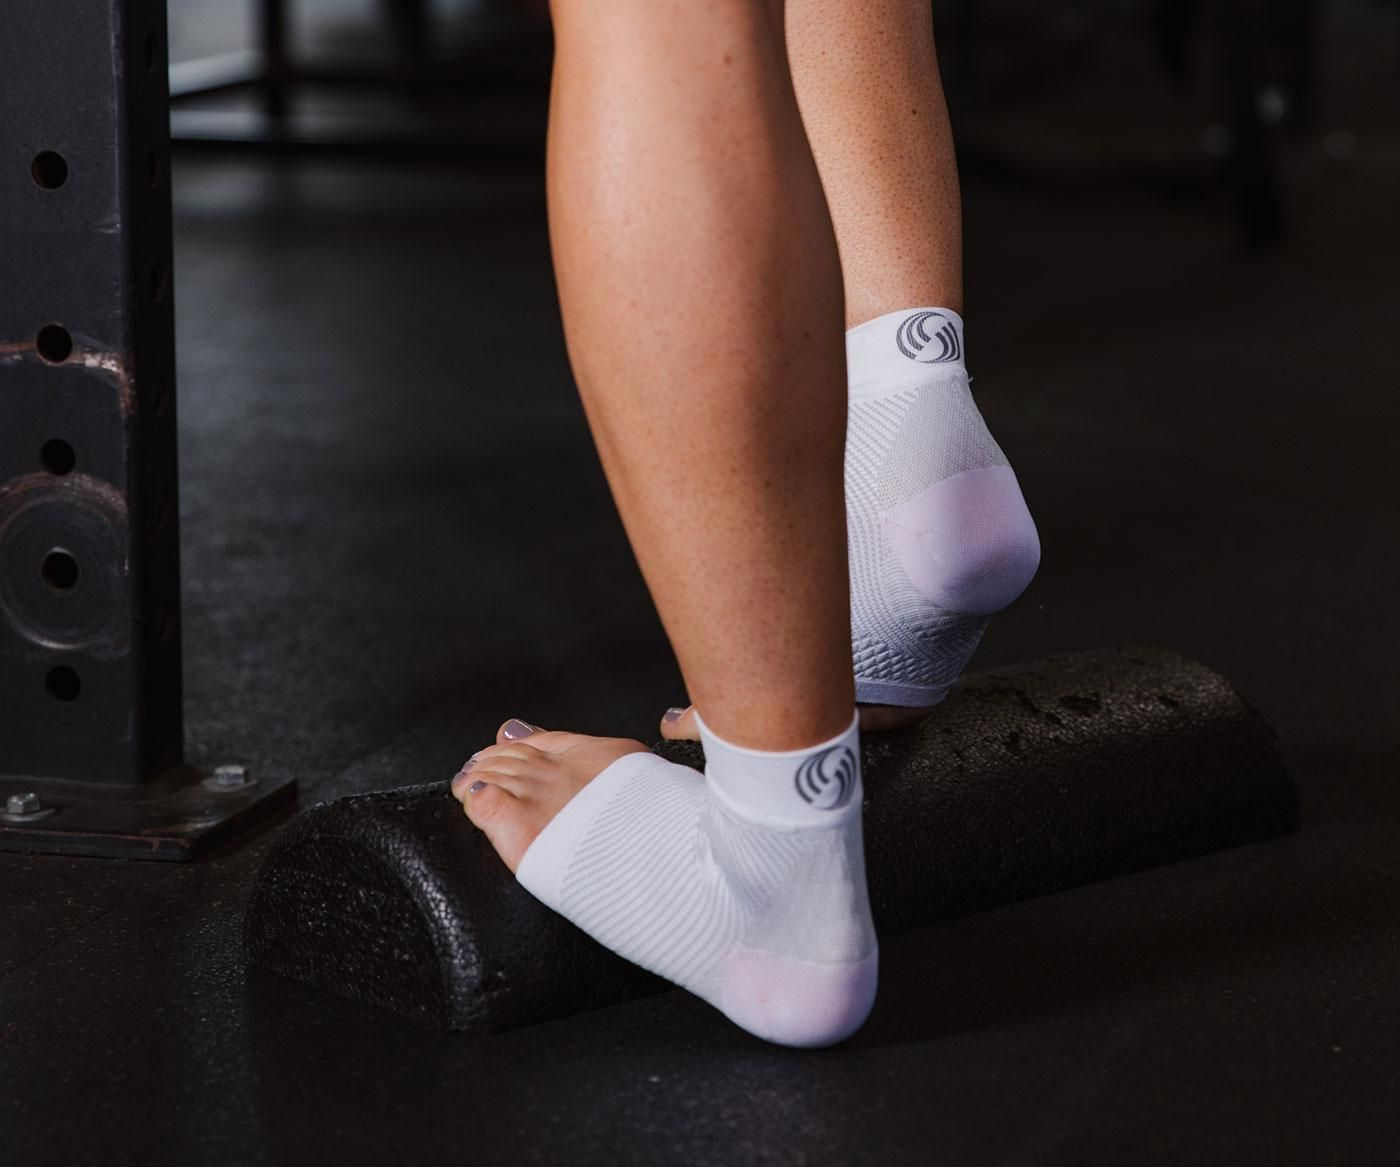 A person exercising their feet whit compression wear